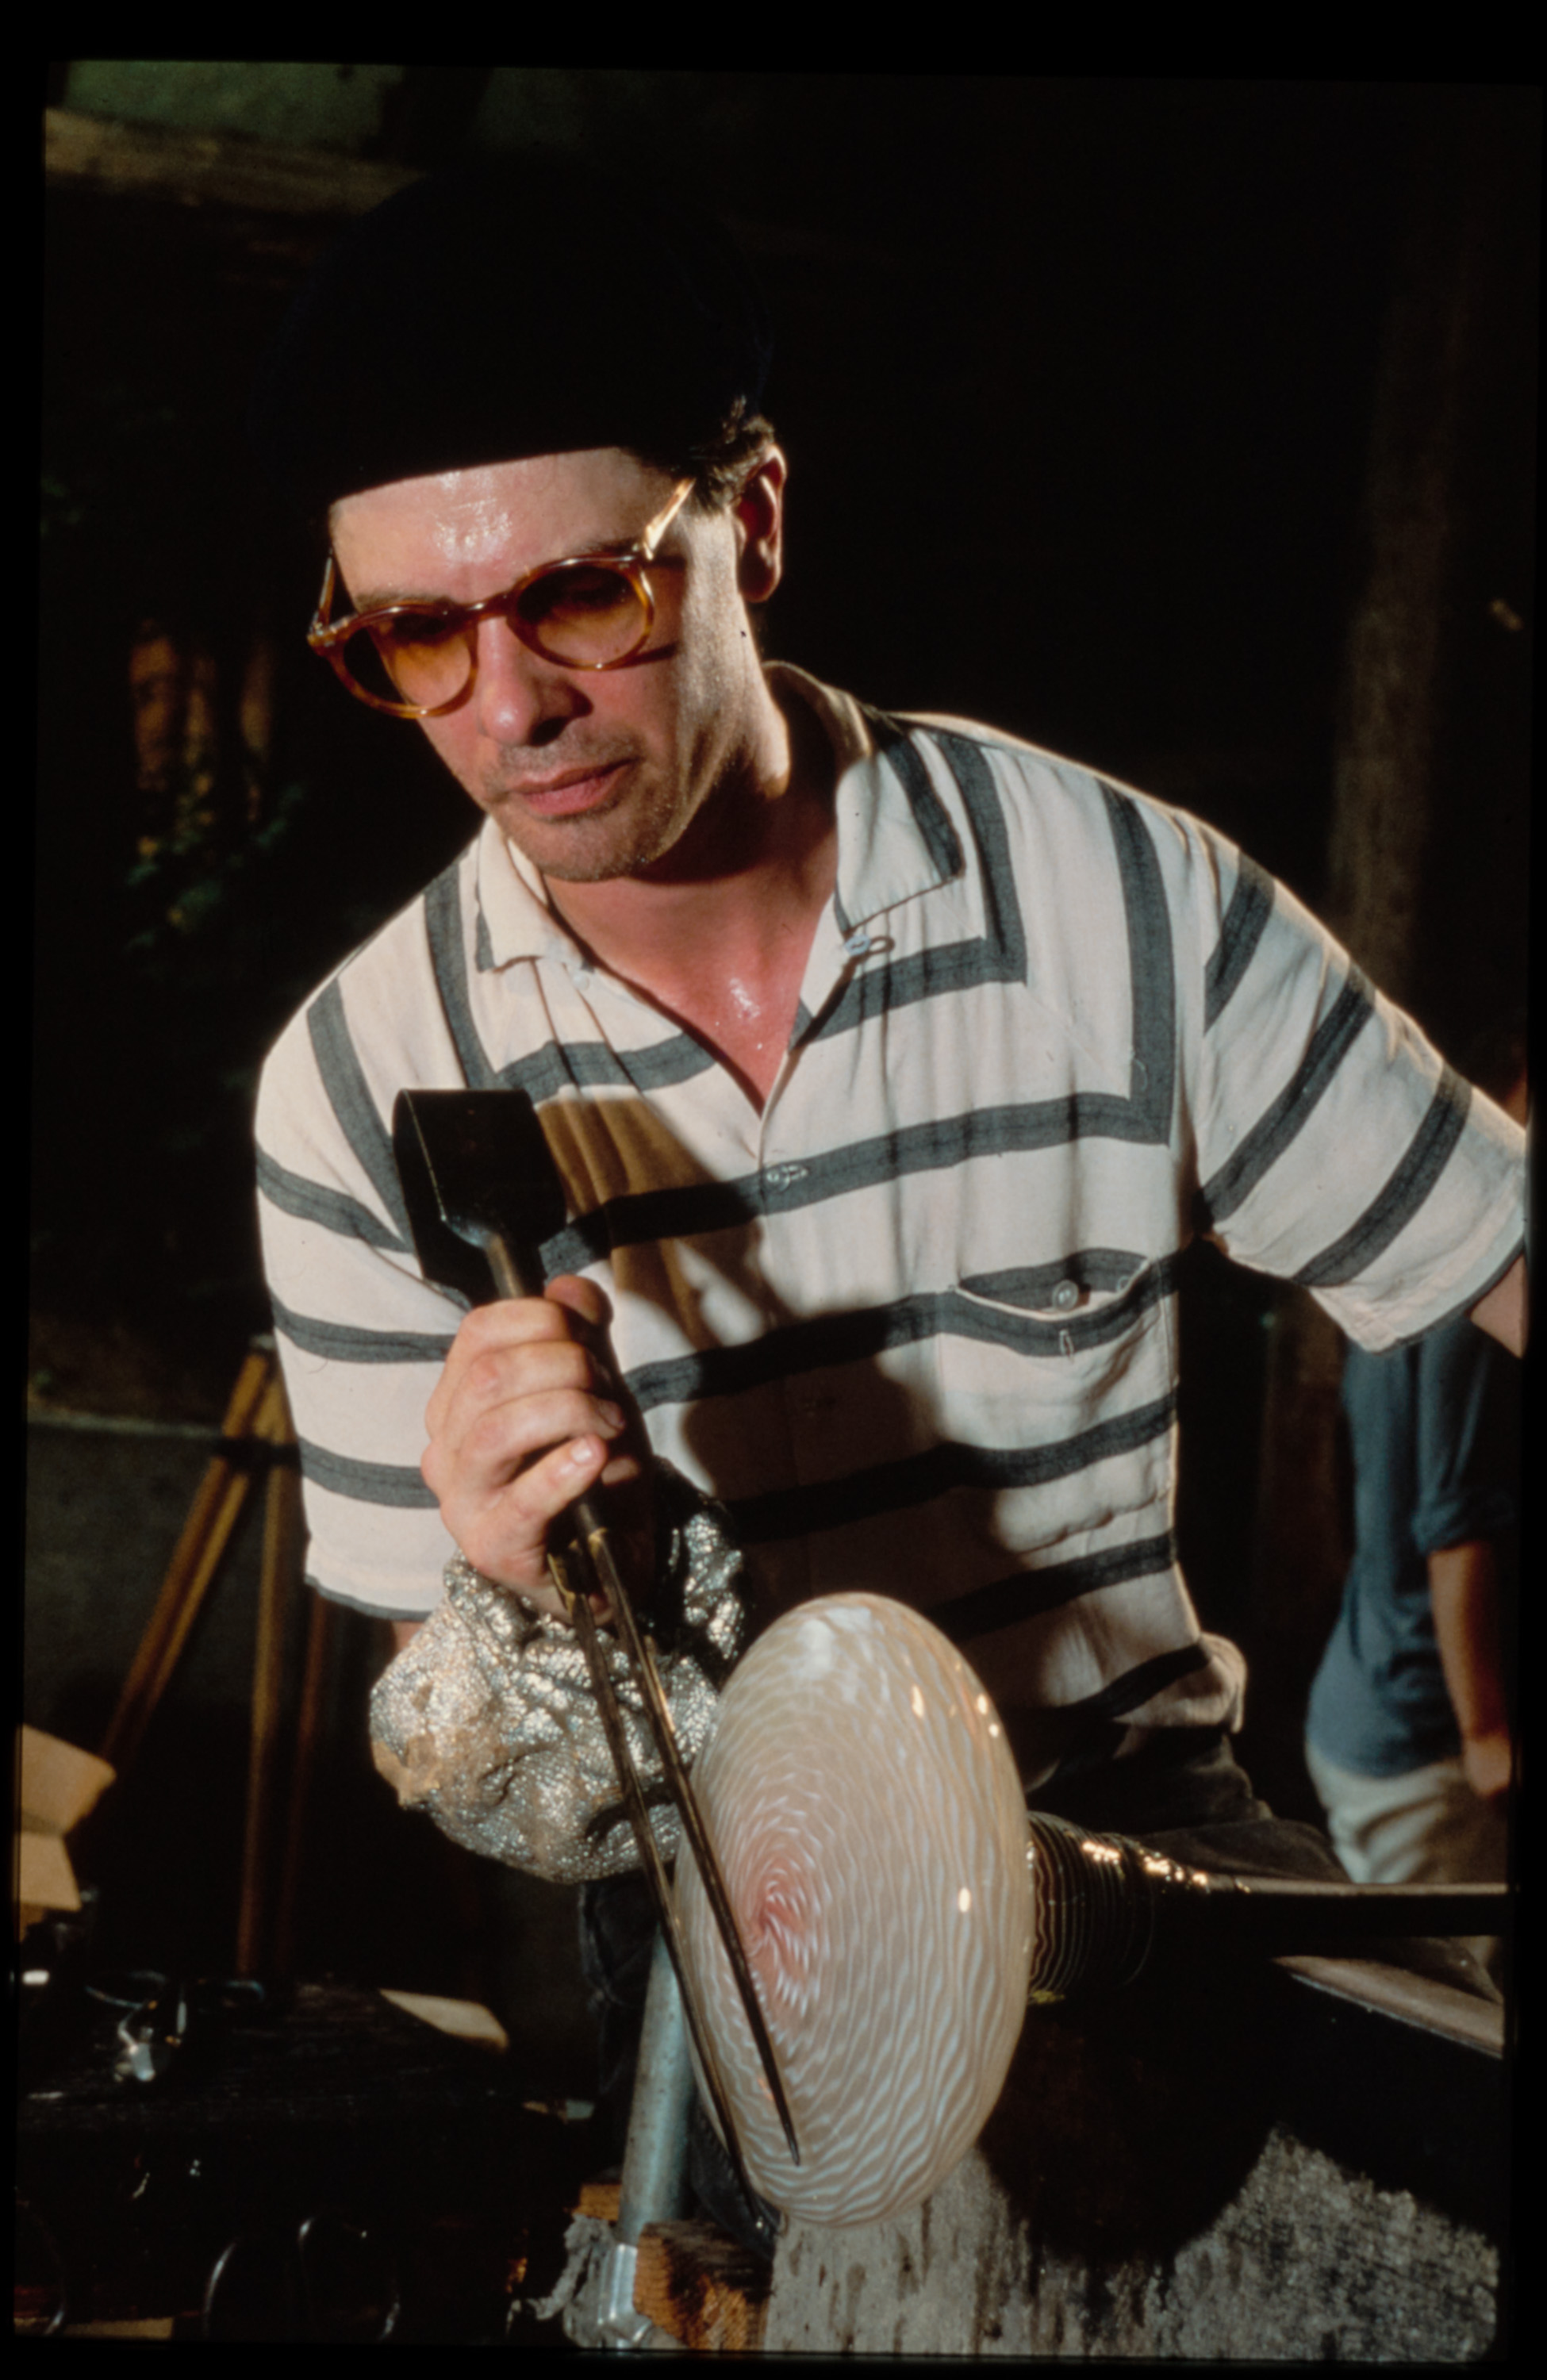 Artist at work on a blown glass object